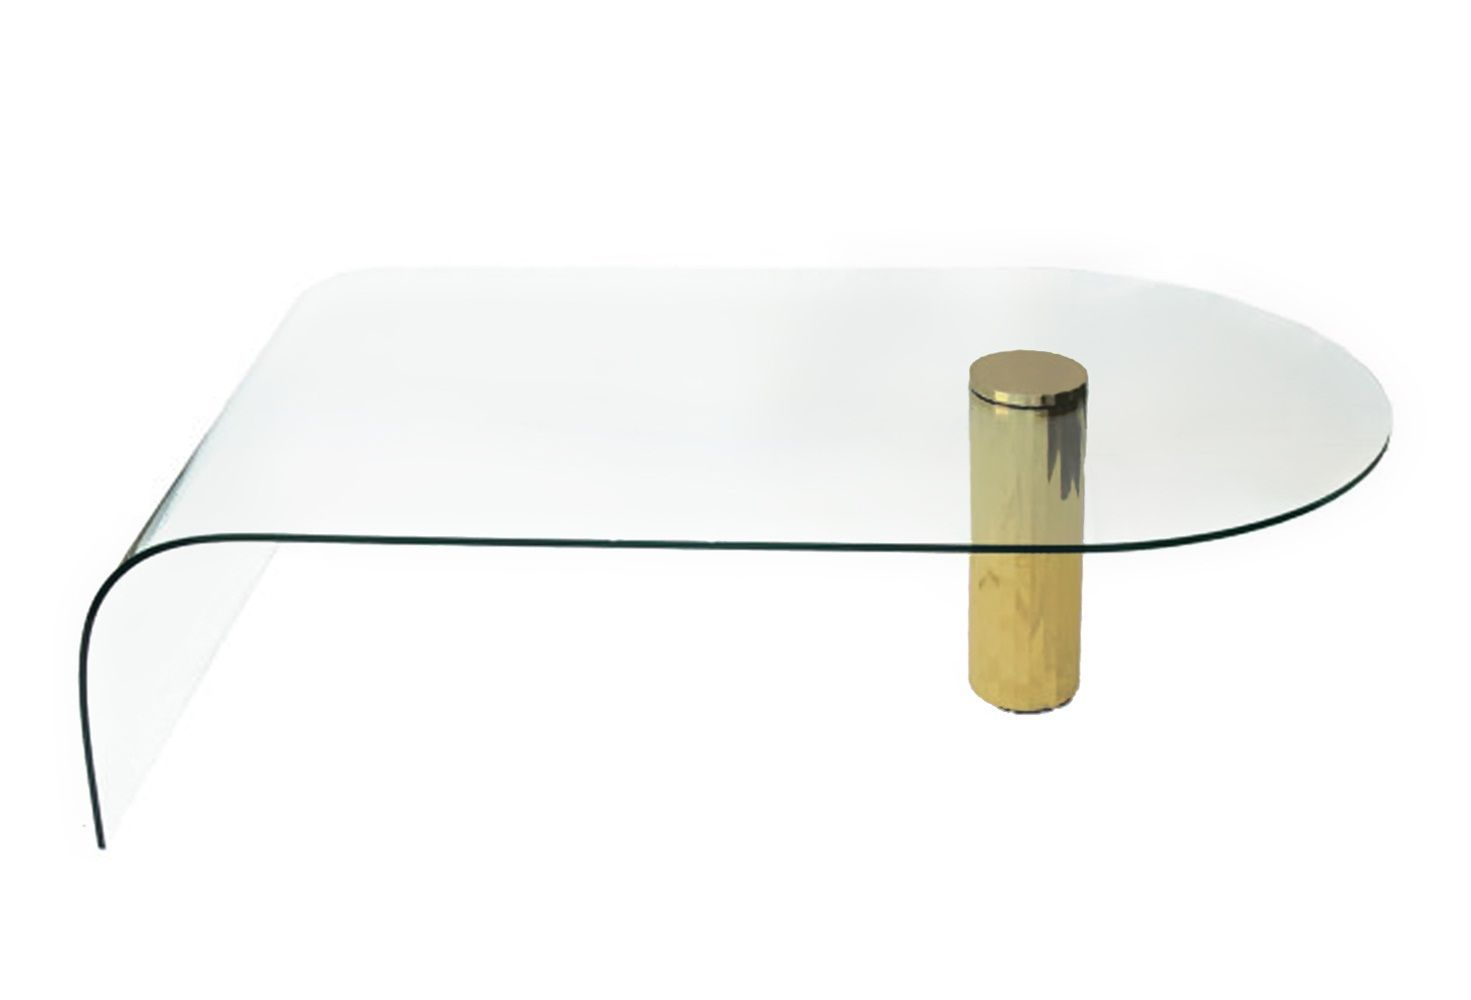 Coffee Table Fascinating Glass Waterfall Coffee Table Vancouver Glass Waterfall Coffee Tabl Contemporary Glass Coffee Tables Rustic Design Contemporary Glass [ 1000 x 1471 Pixel ]